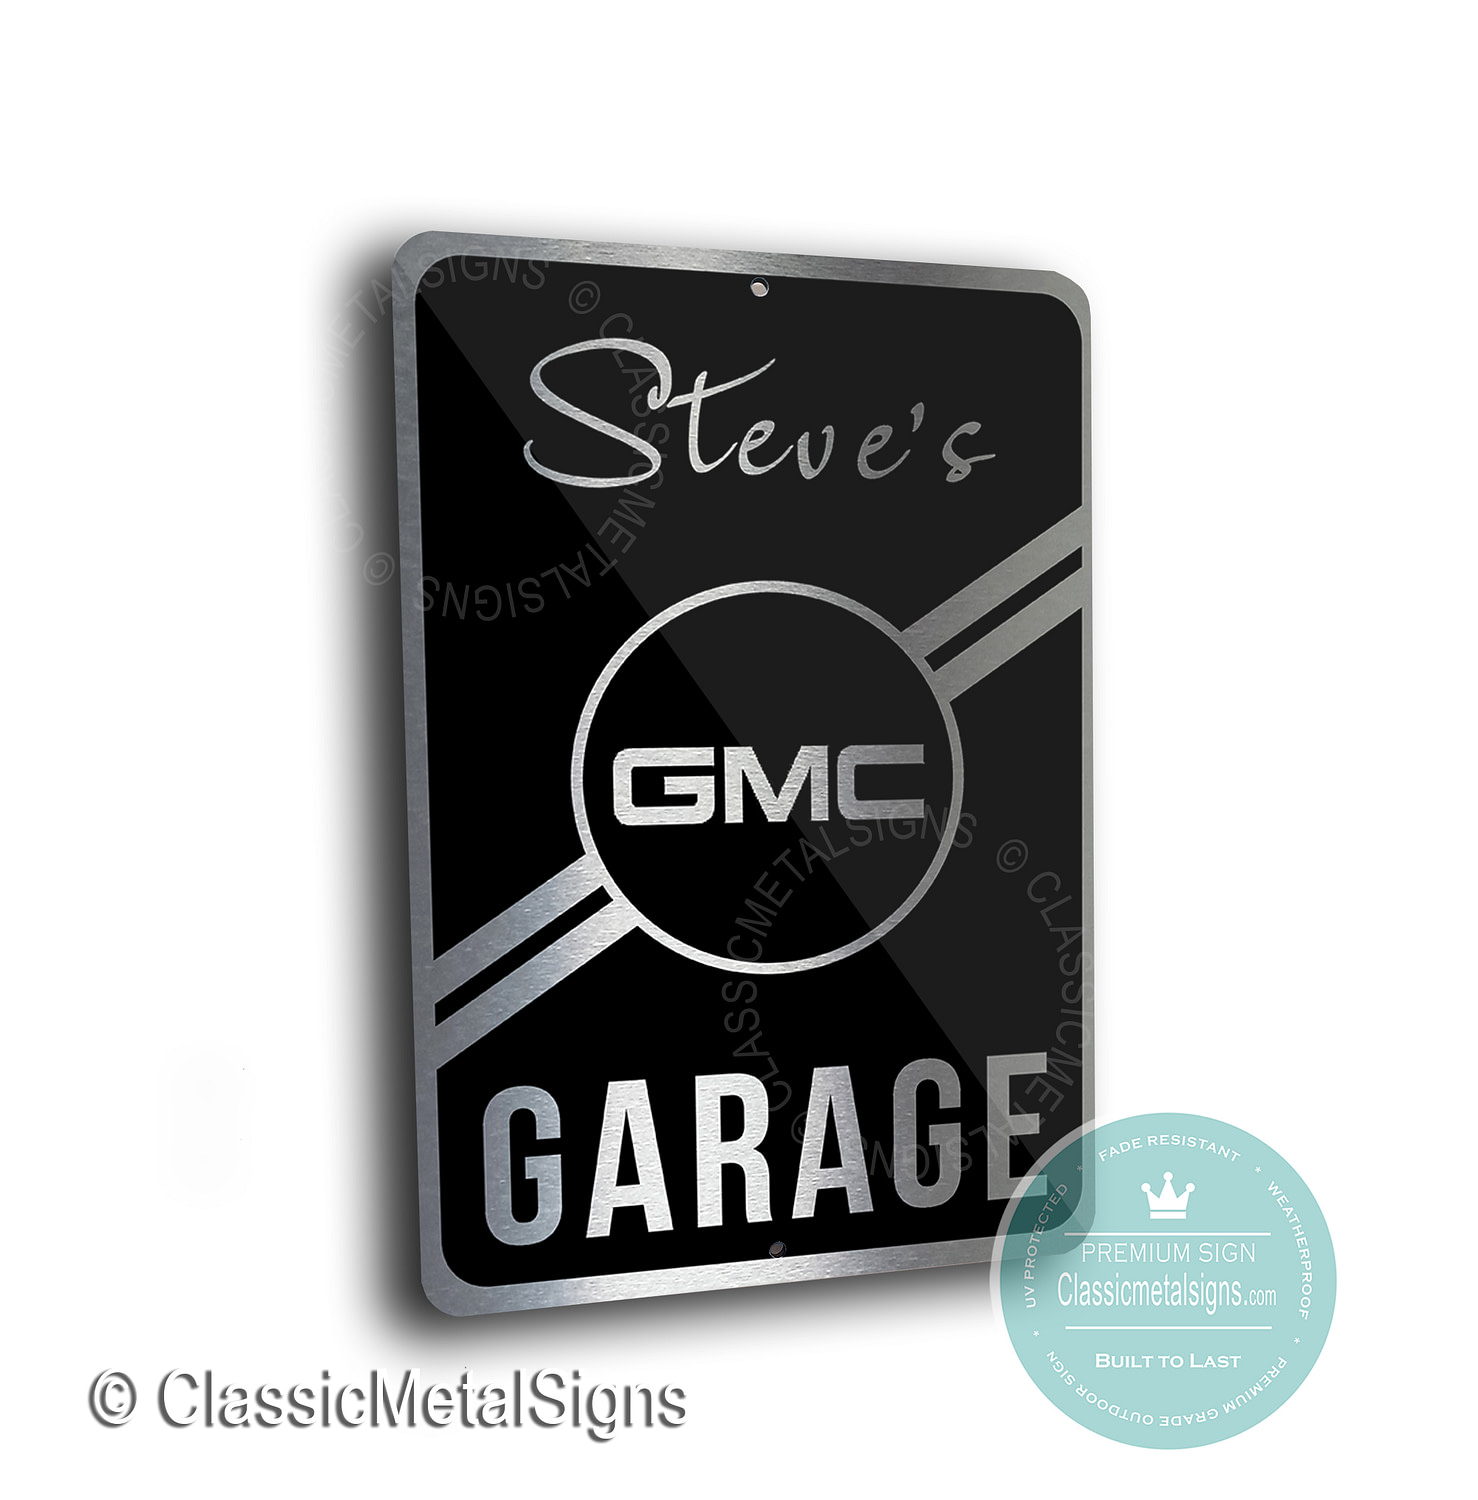 GMC Garage Signs